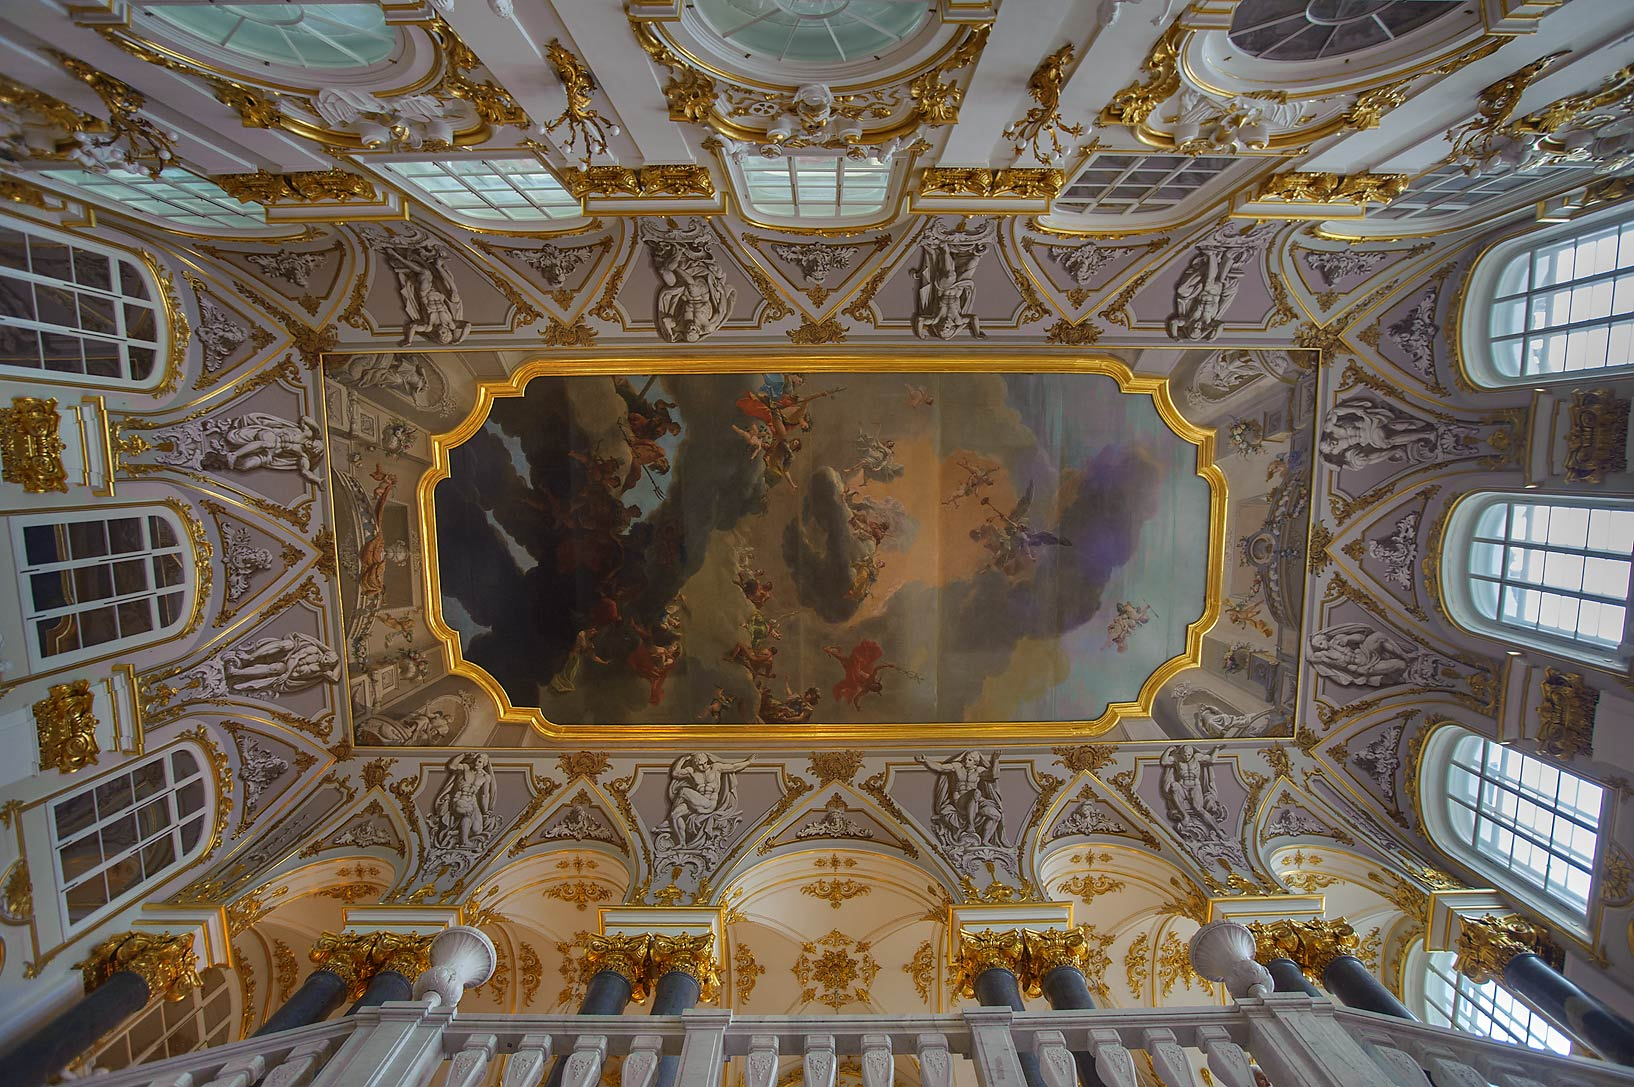 Plafond over grand staircase in Hermitage Museum. Petersburg, Russia